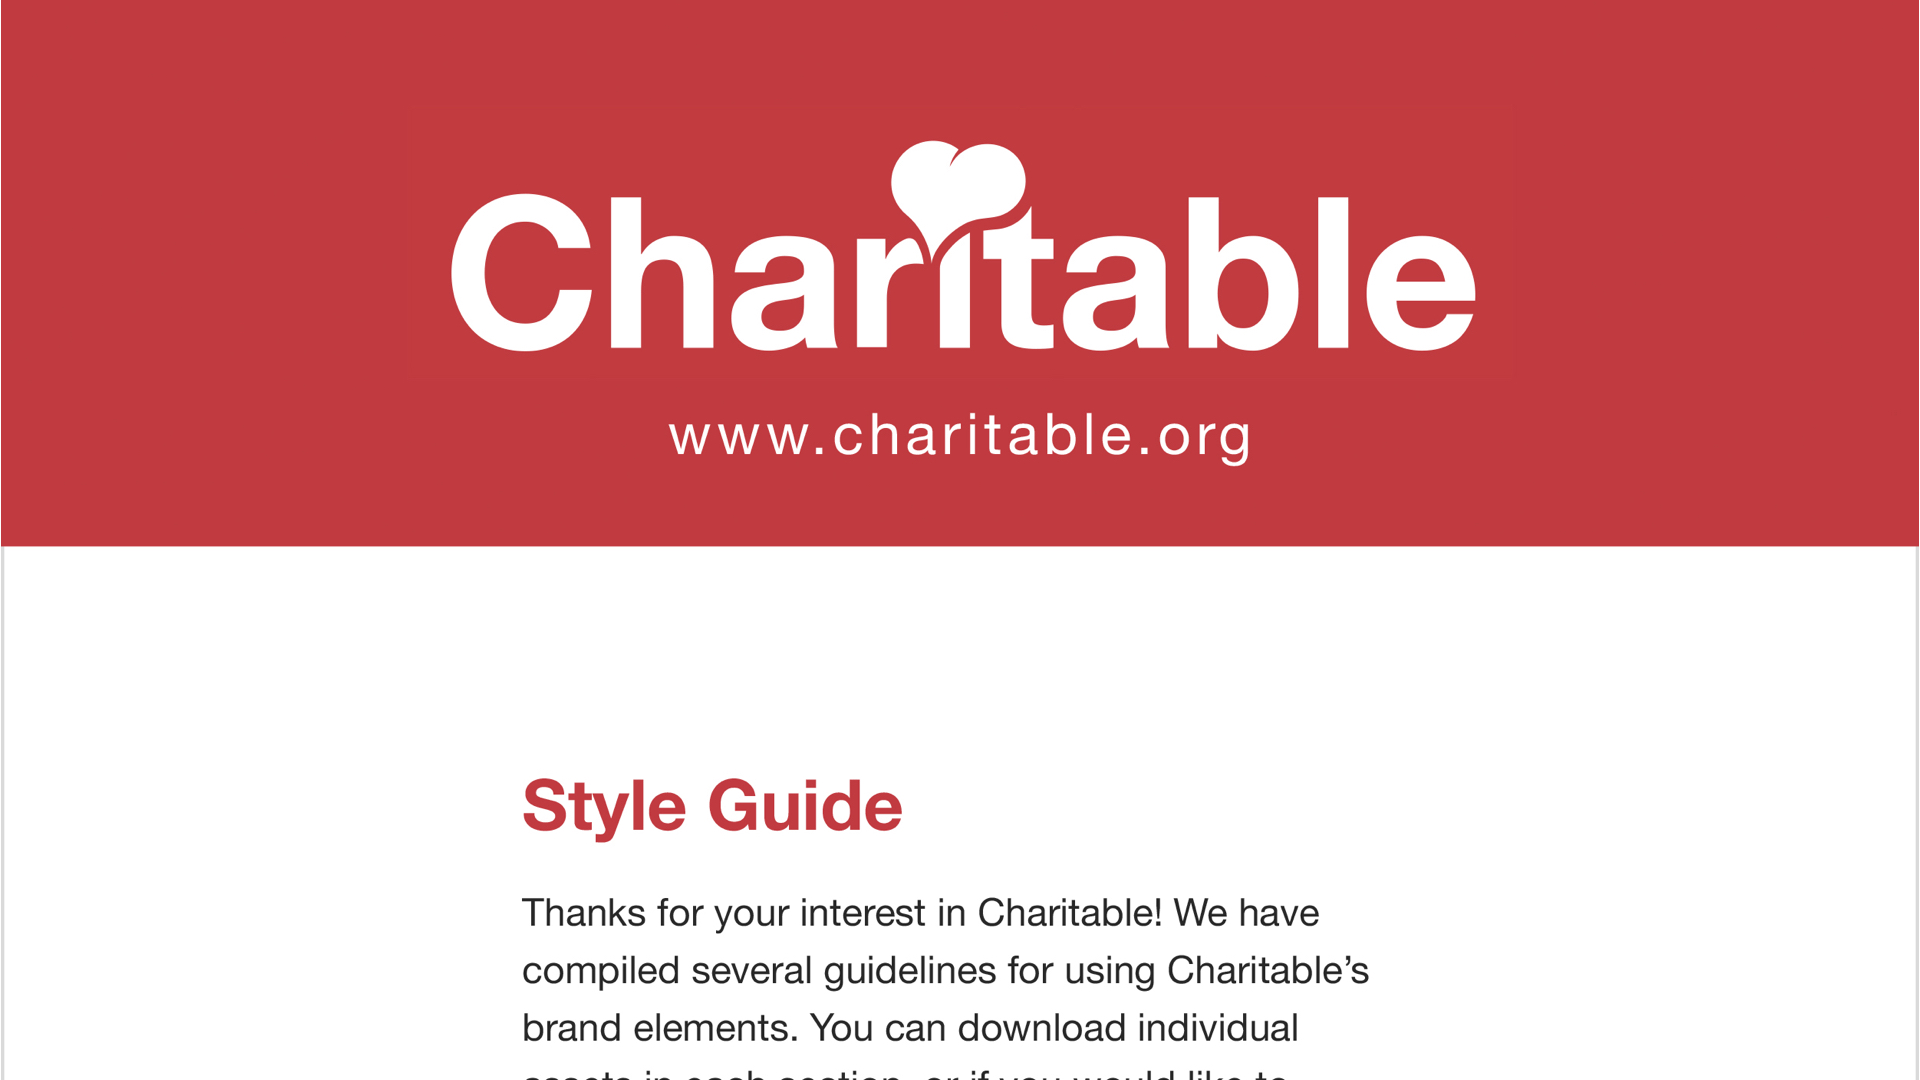 Style Guide - Shaped identity of Charitable.org brand by defining language and brand vision